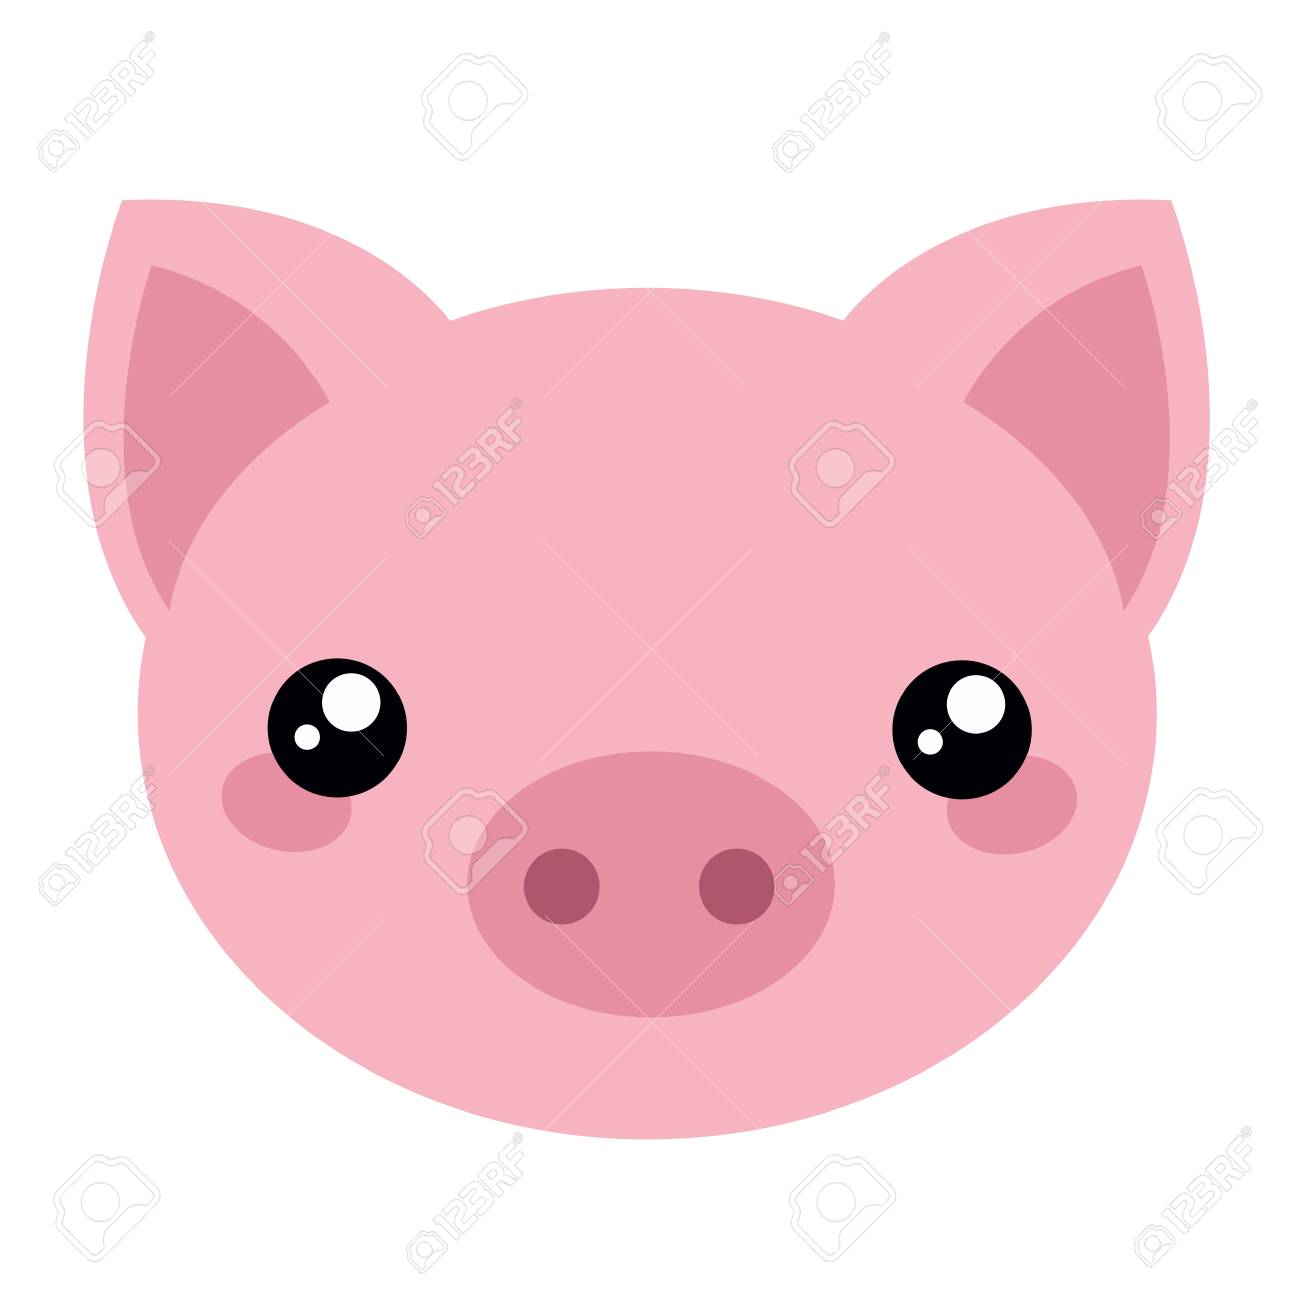 cartoon pig face royalty free cliparts vectors and stock